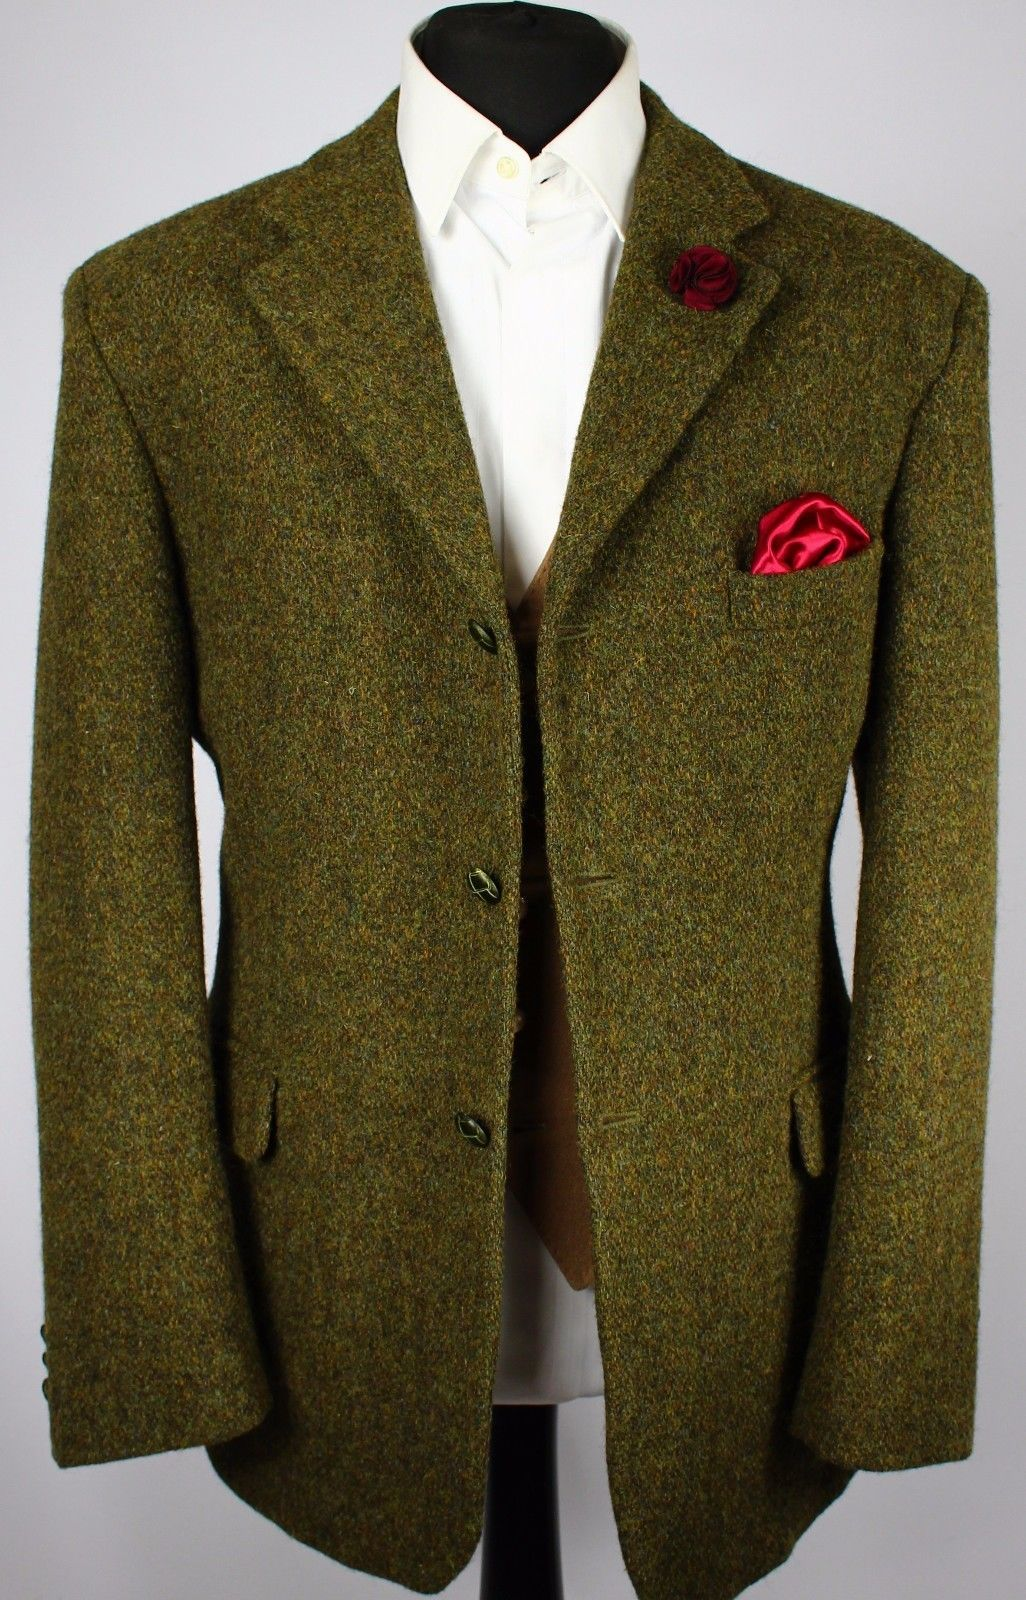 Harris Tweed Blazer Jacket Green Wedding Country 44r Exceptional Colour 926 Ebay Well Dressed Men Green Jacket Harris Tweed